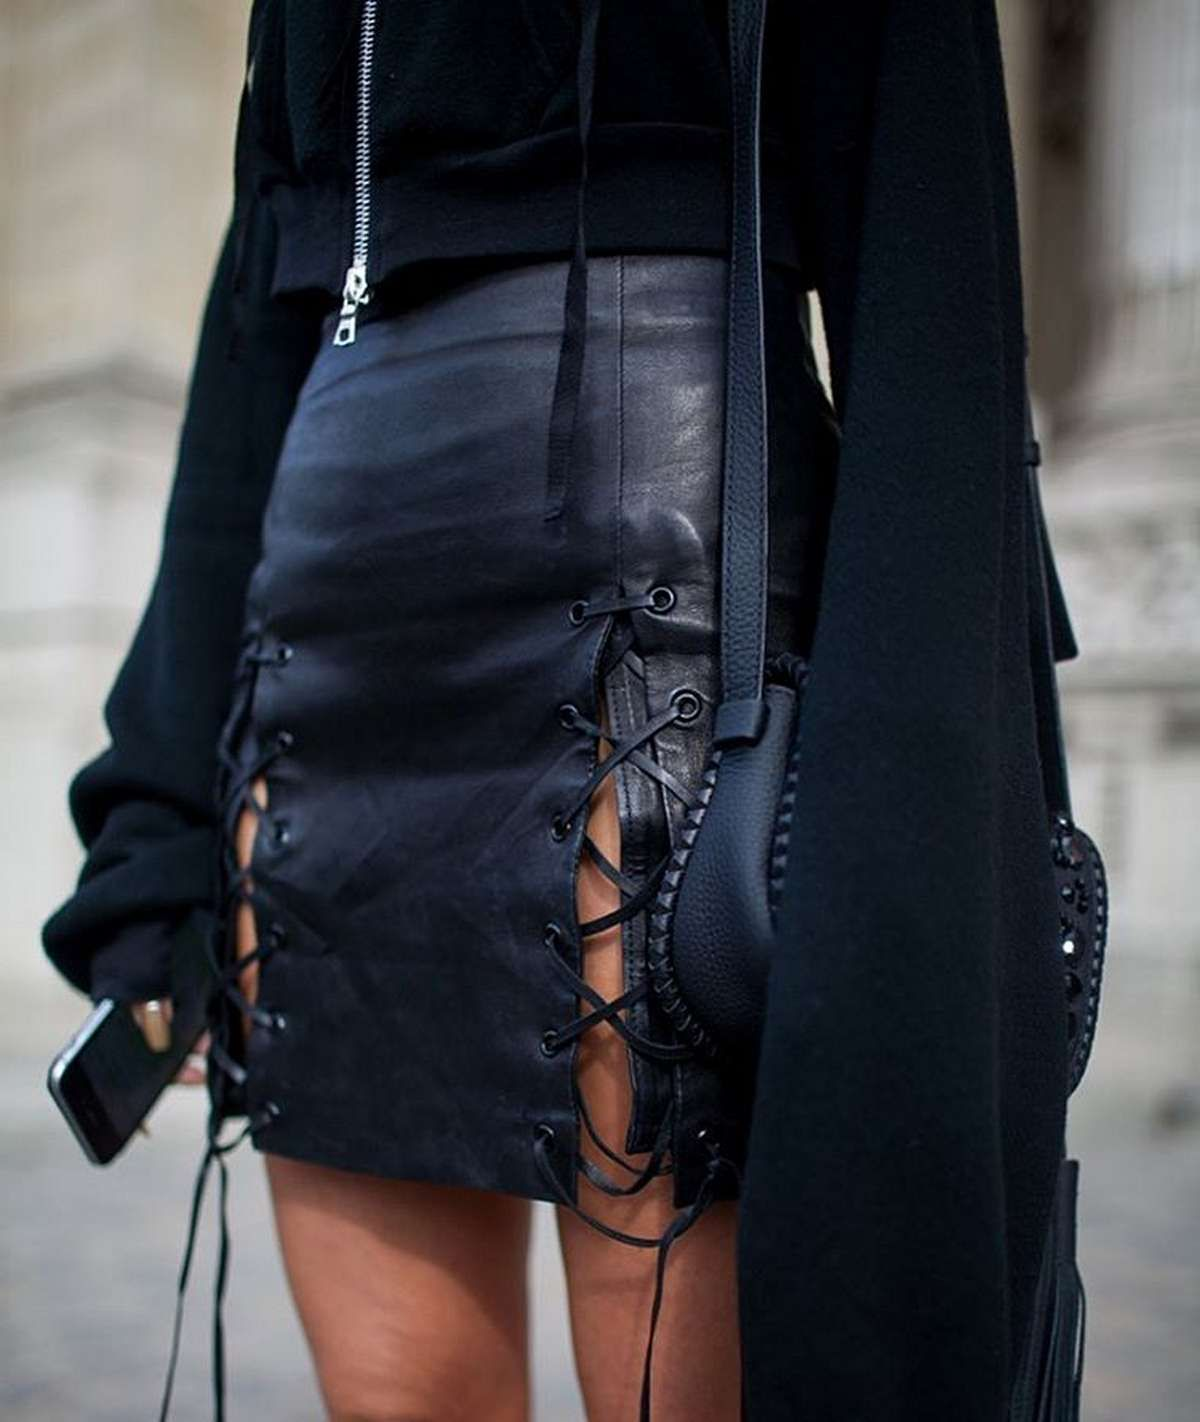 100 Badass Leather Clothes For Women | Clothes women Badass and Clothes